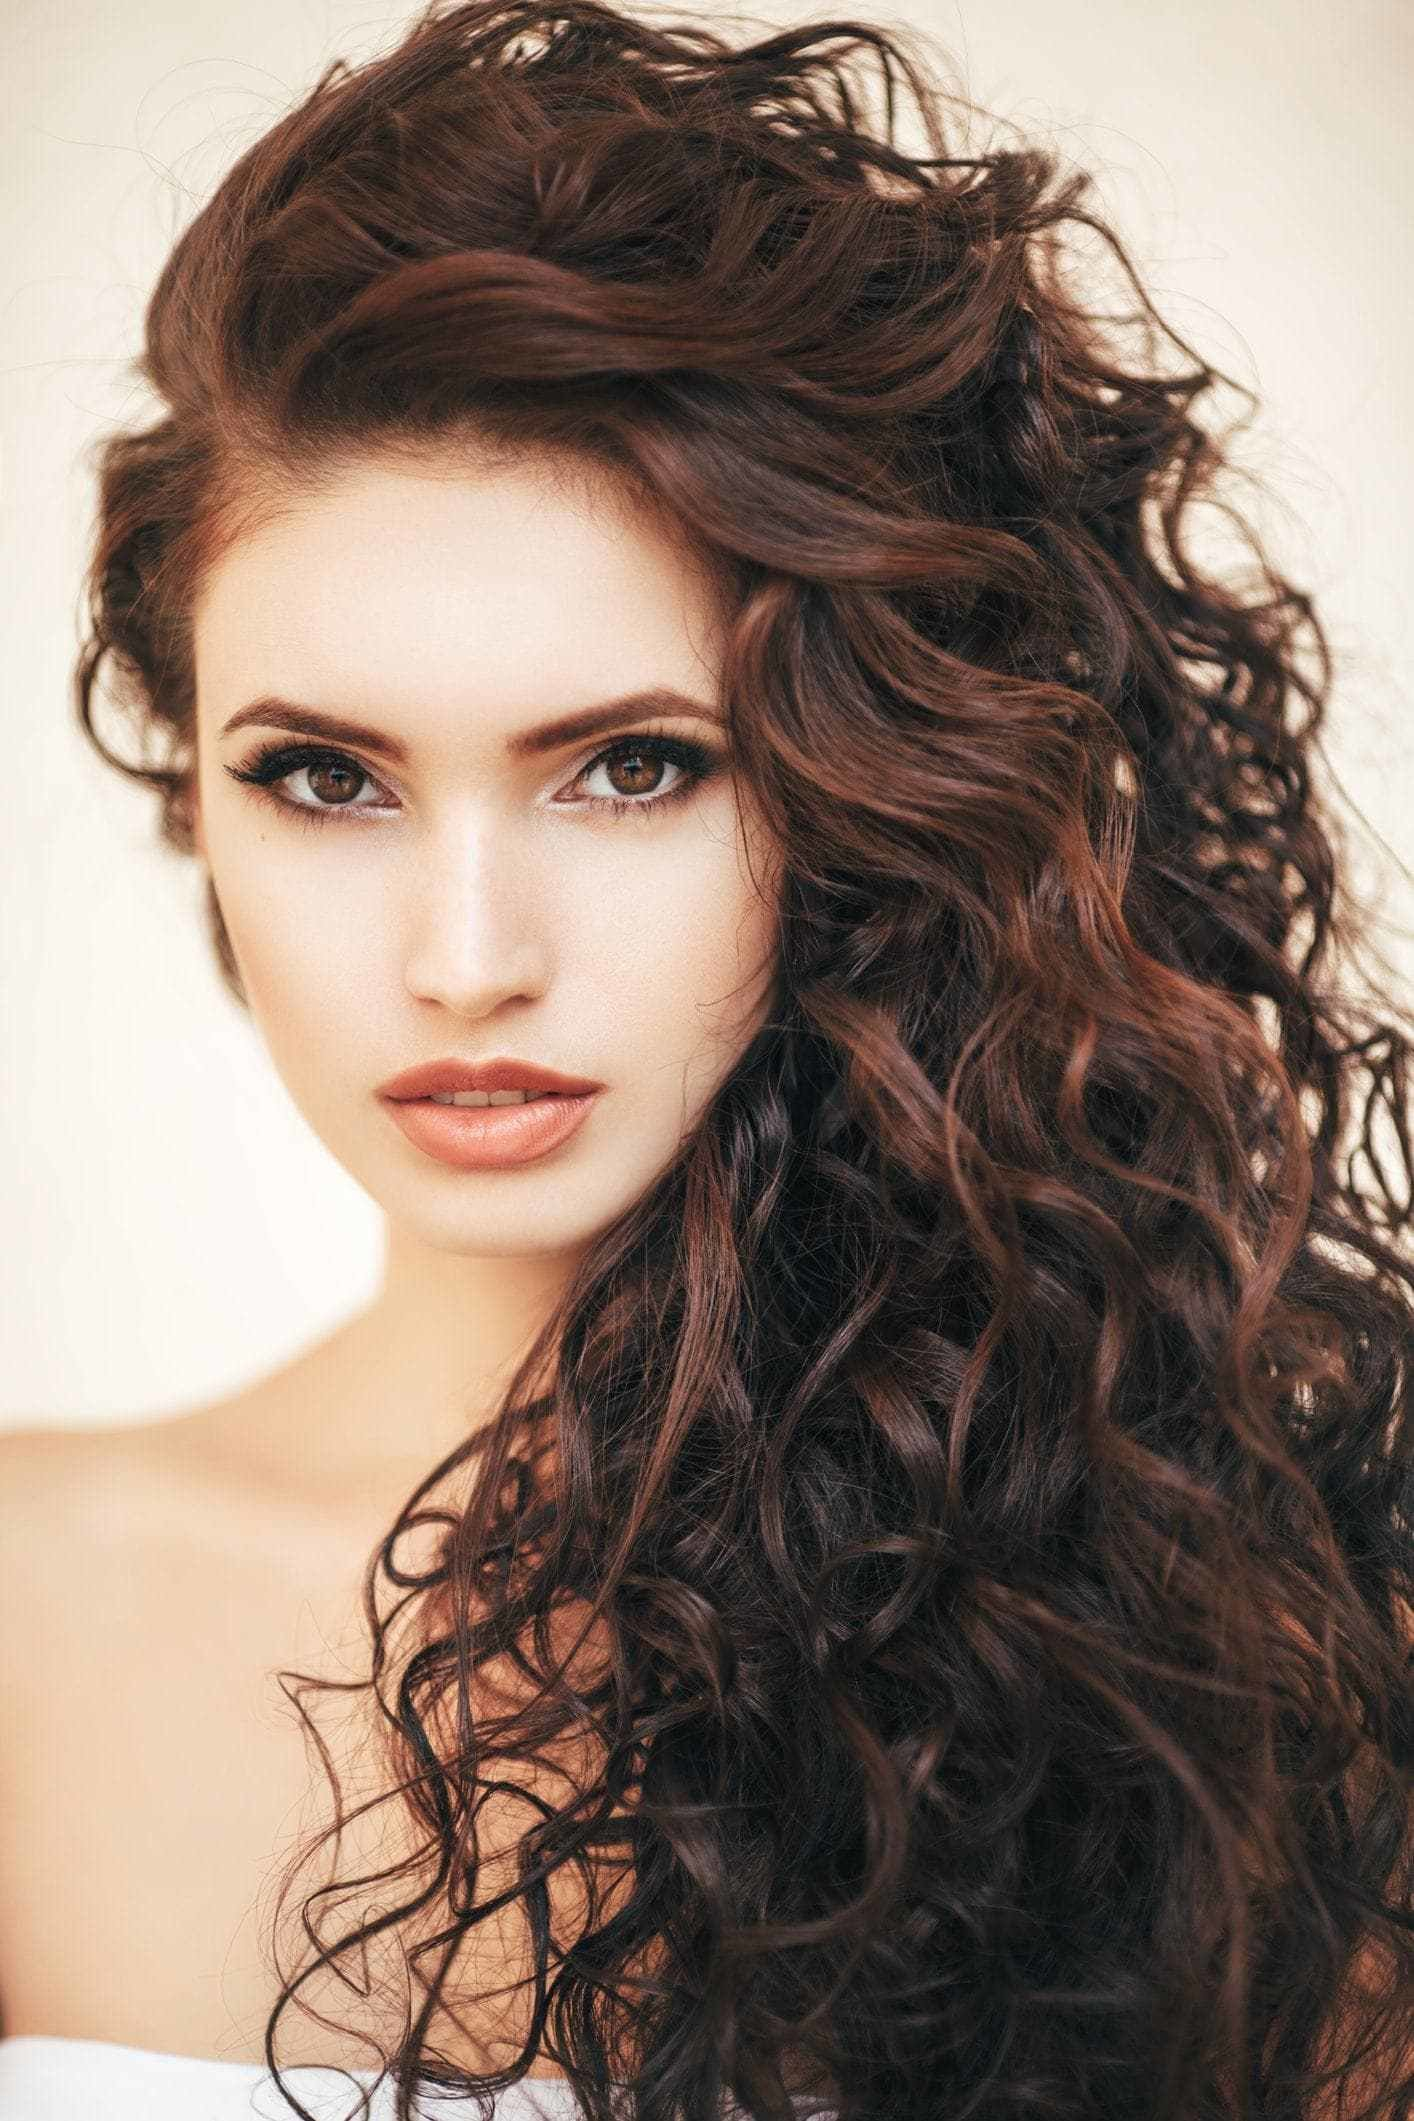 The Best Curly Perm 20 Curly Looks To Consider For Your First Perm Pictures